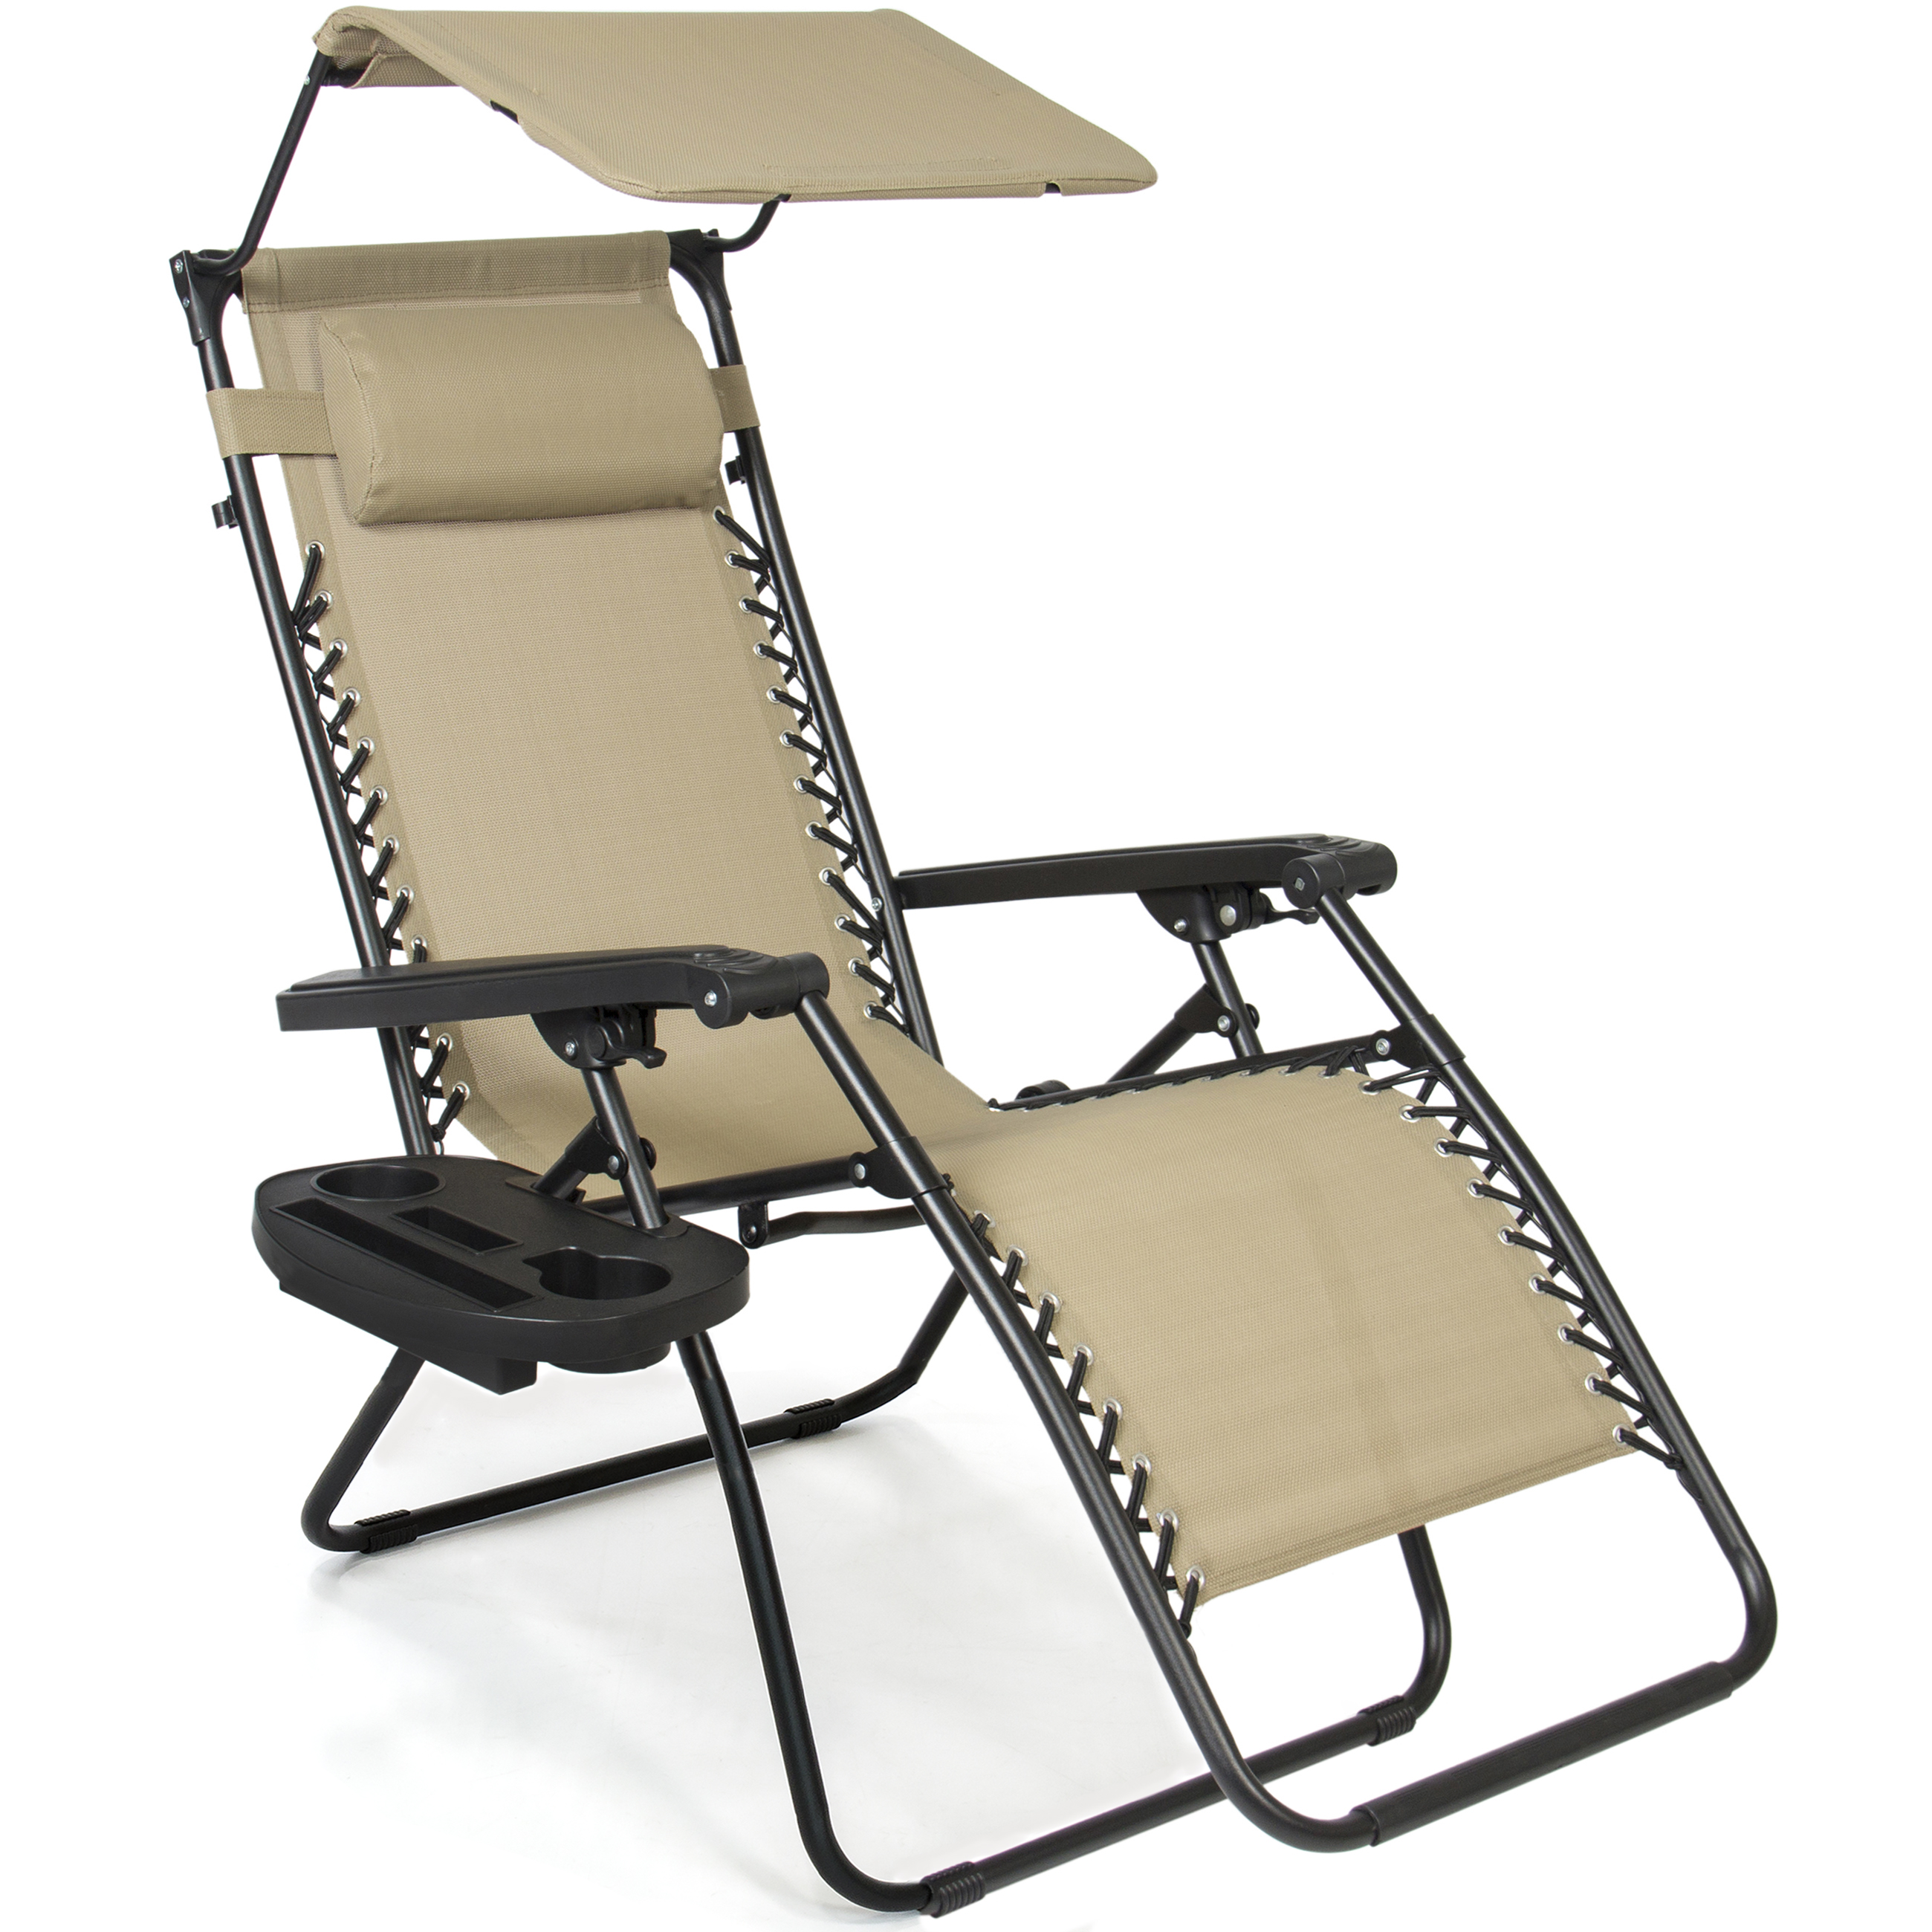 Folding Zero Gravity Recliner Lounge Chair With Canopy Shade u0026 Magazine Cup Holder  sc 1 st  Walmart & Folding Zero Gravity Recliner Lounge Chair With Canopy Shade ... islam-shia.org